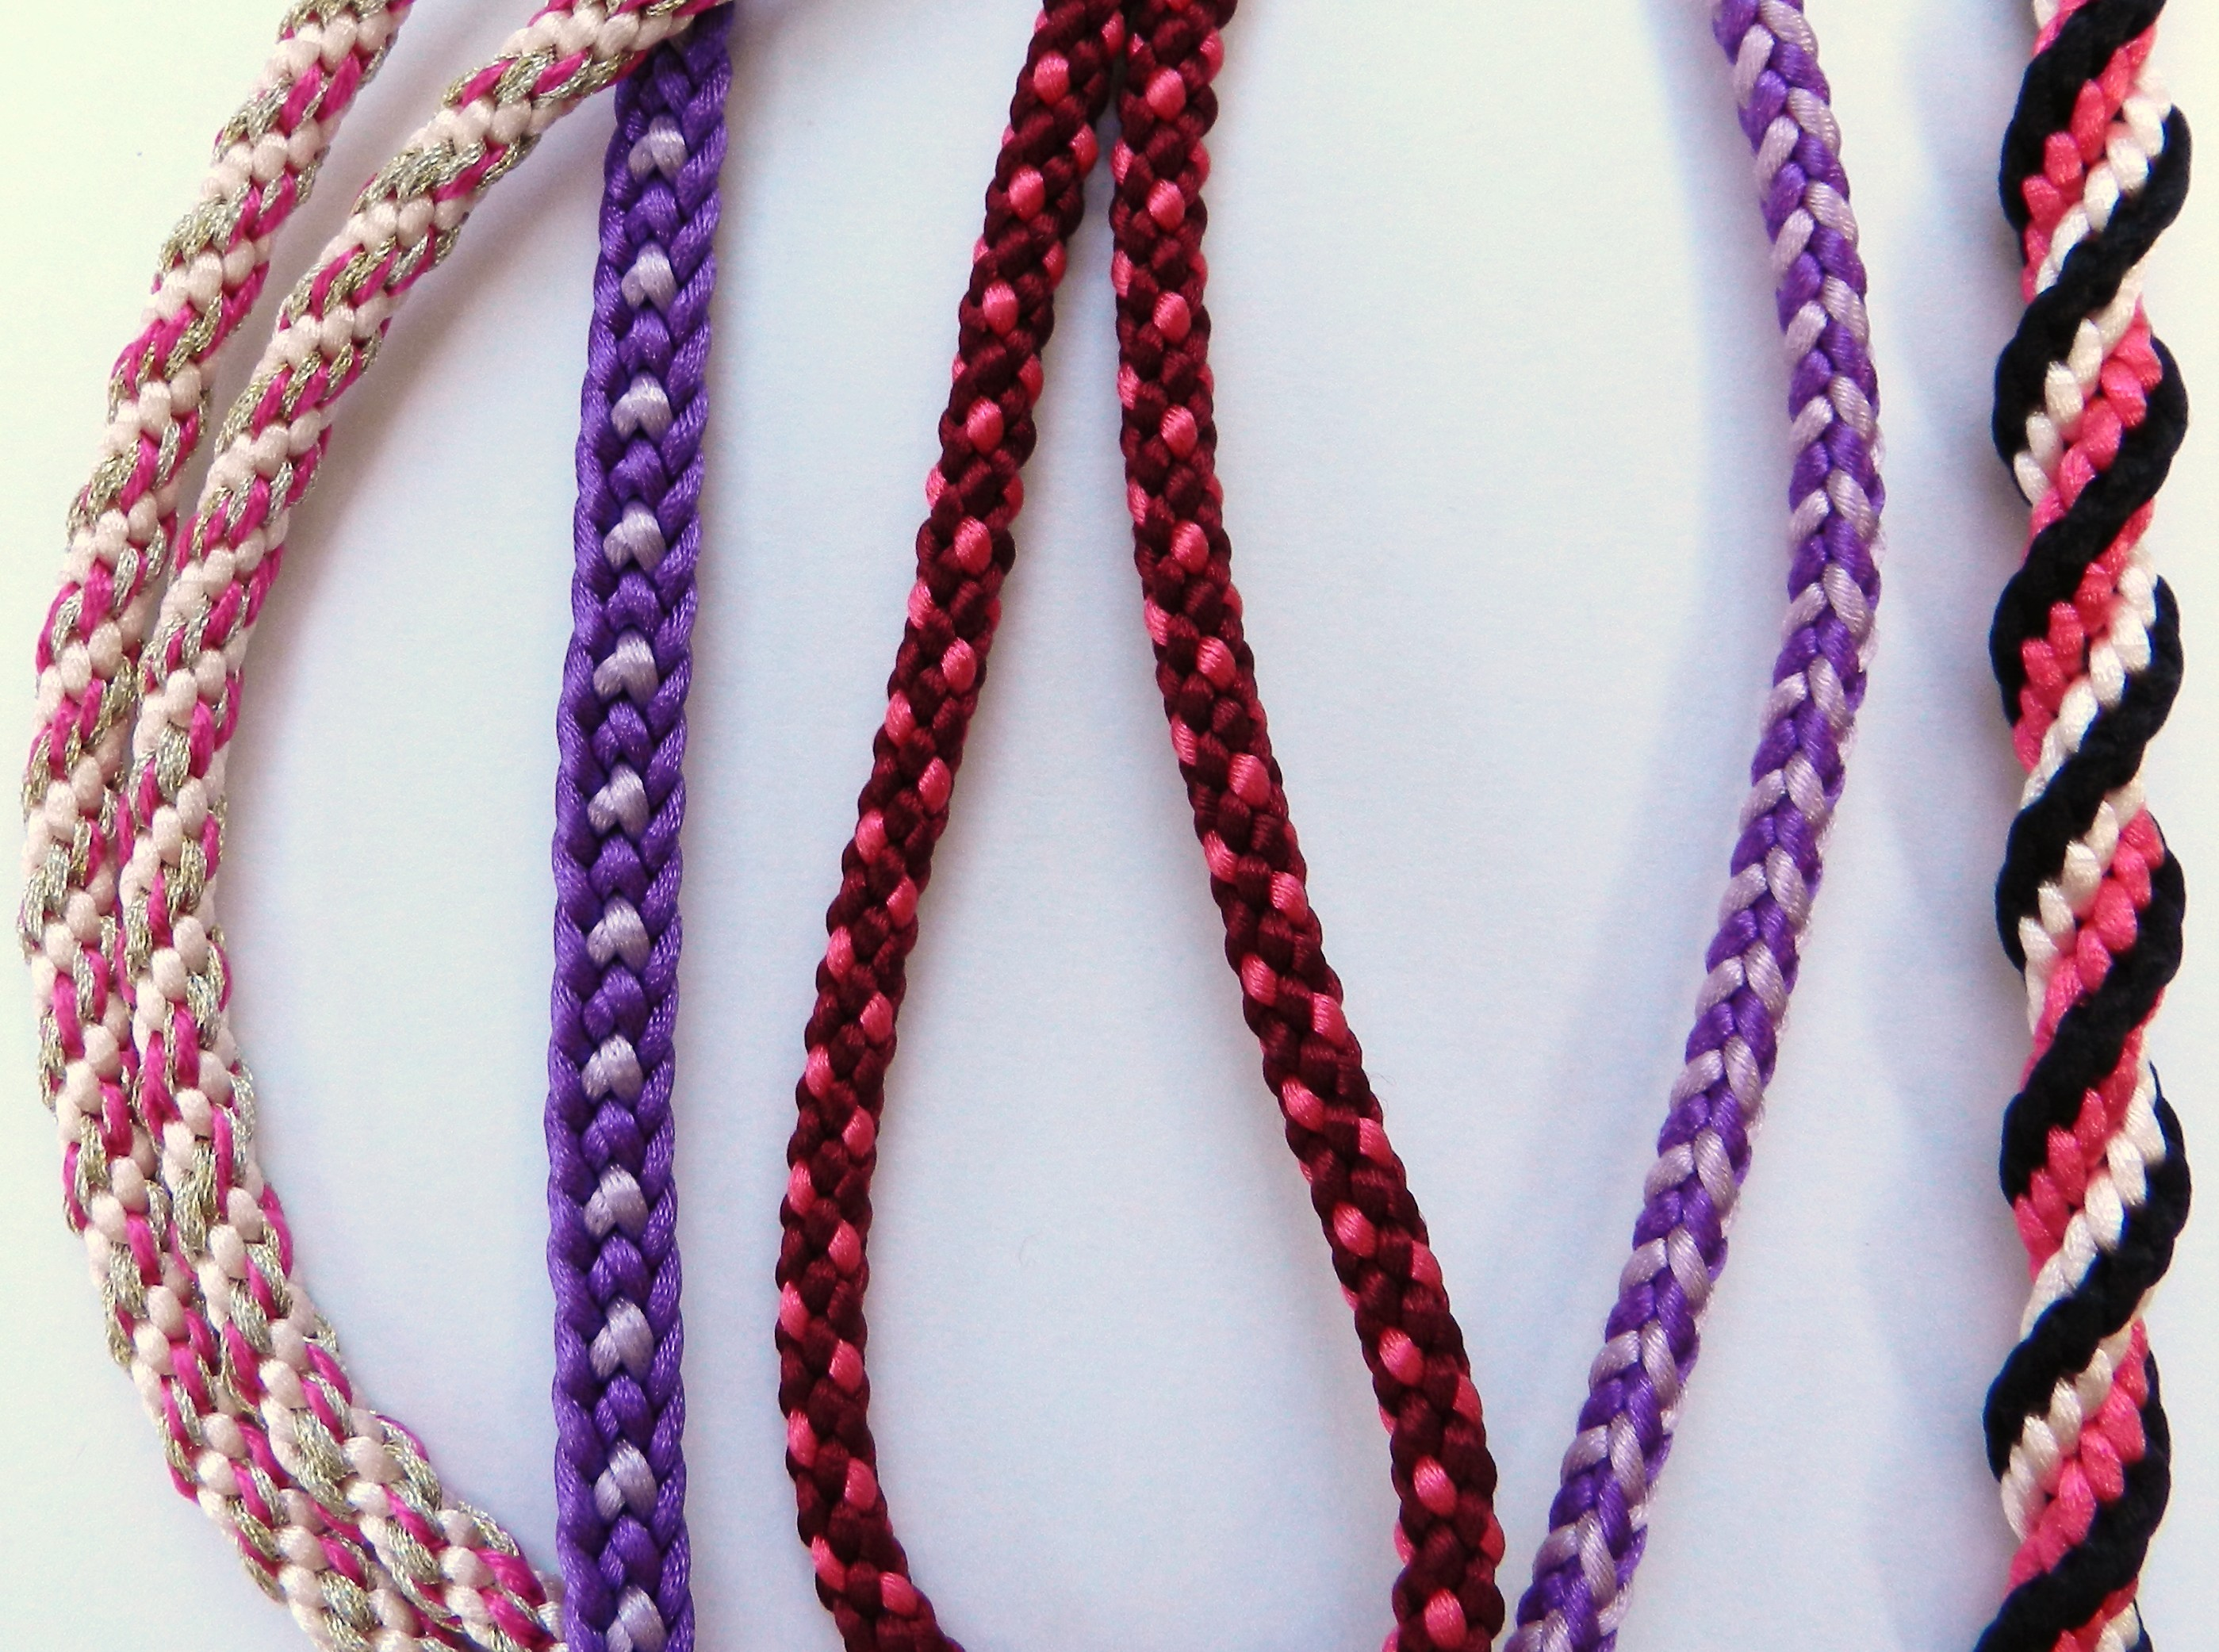 ucanso cord women chain new s diy braided bb rope necklace product fashionable handmade cotton